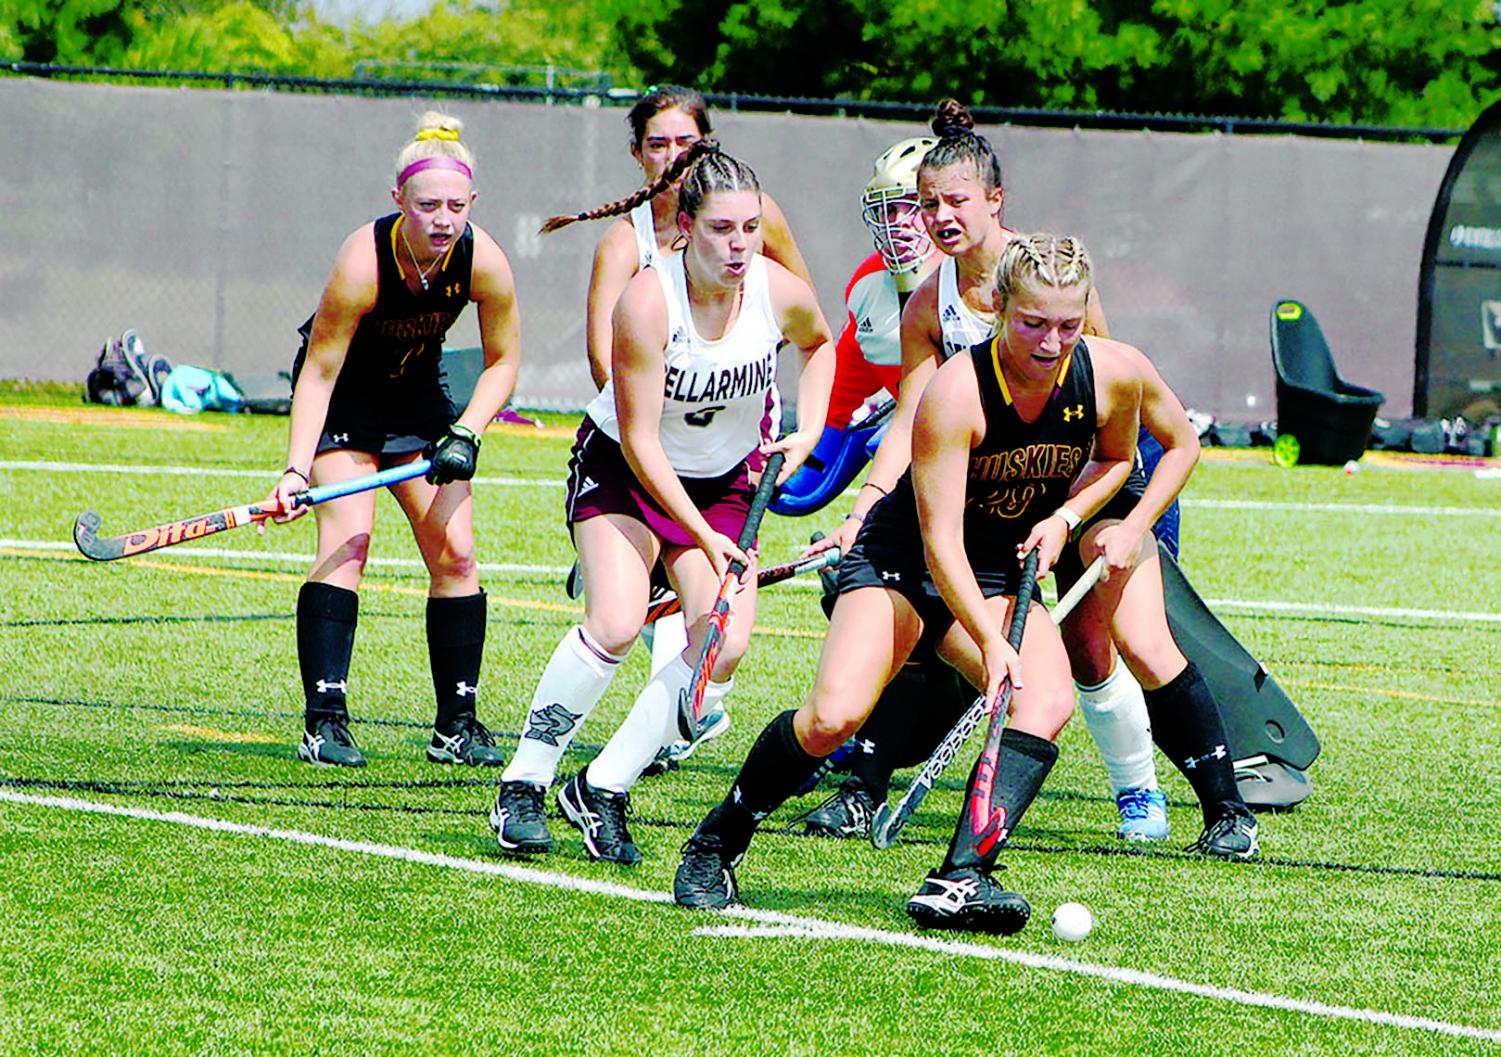 The Bloomsburg University  field hockey team is now 0-2 after two opening losses to start the 2019 season.